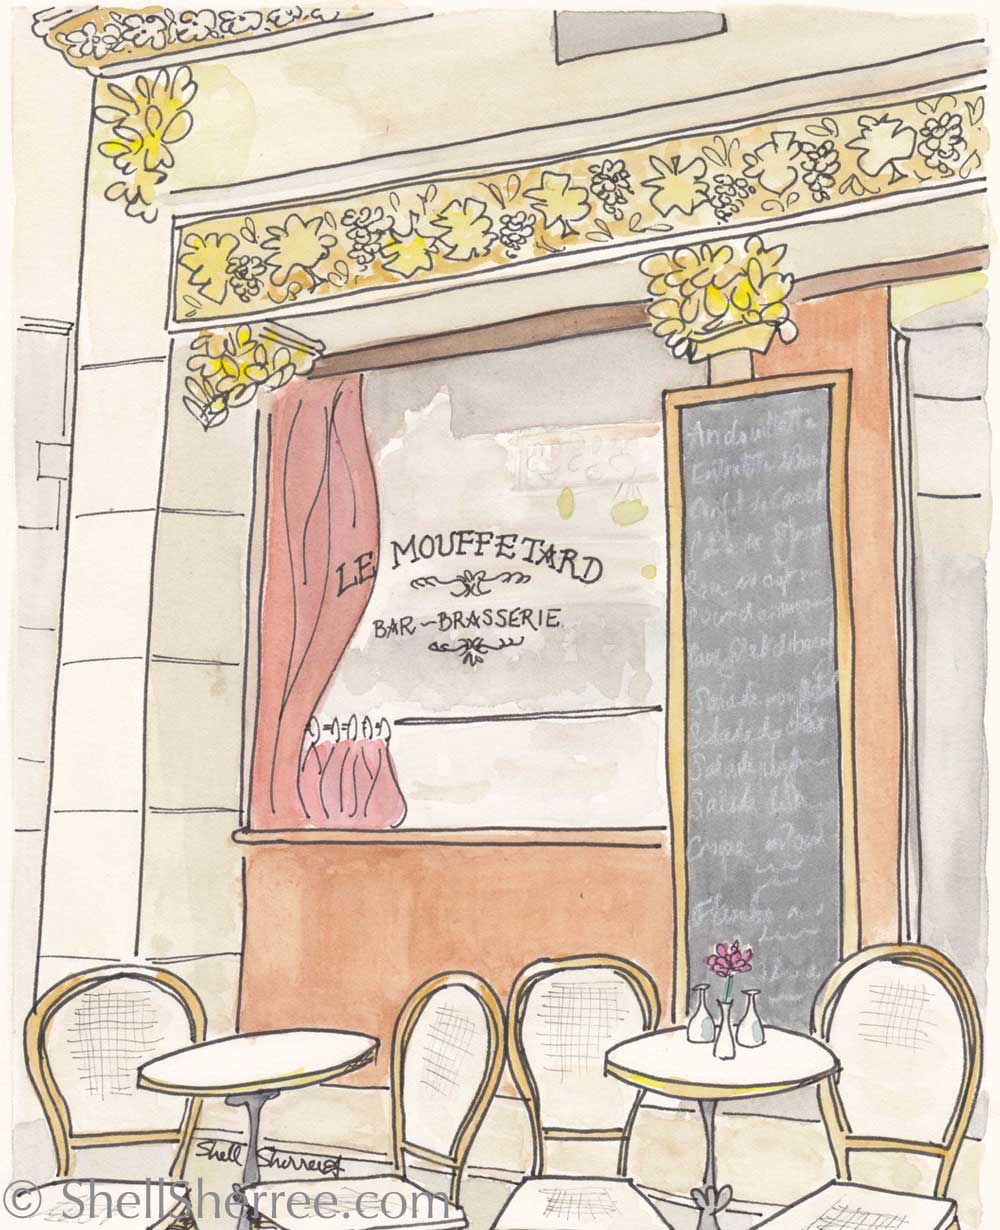 paris print bar brasserie Le Mouffetard by shell sherree